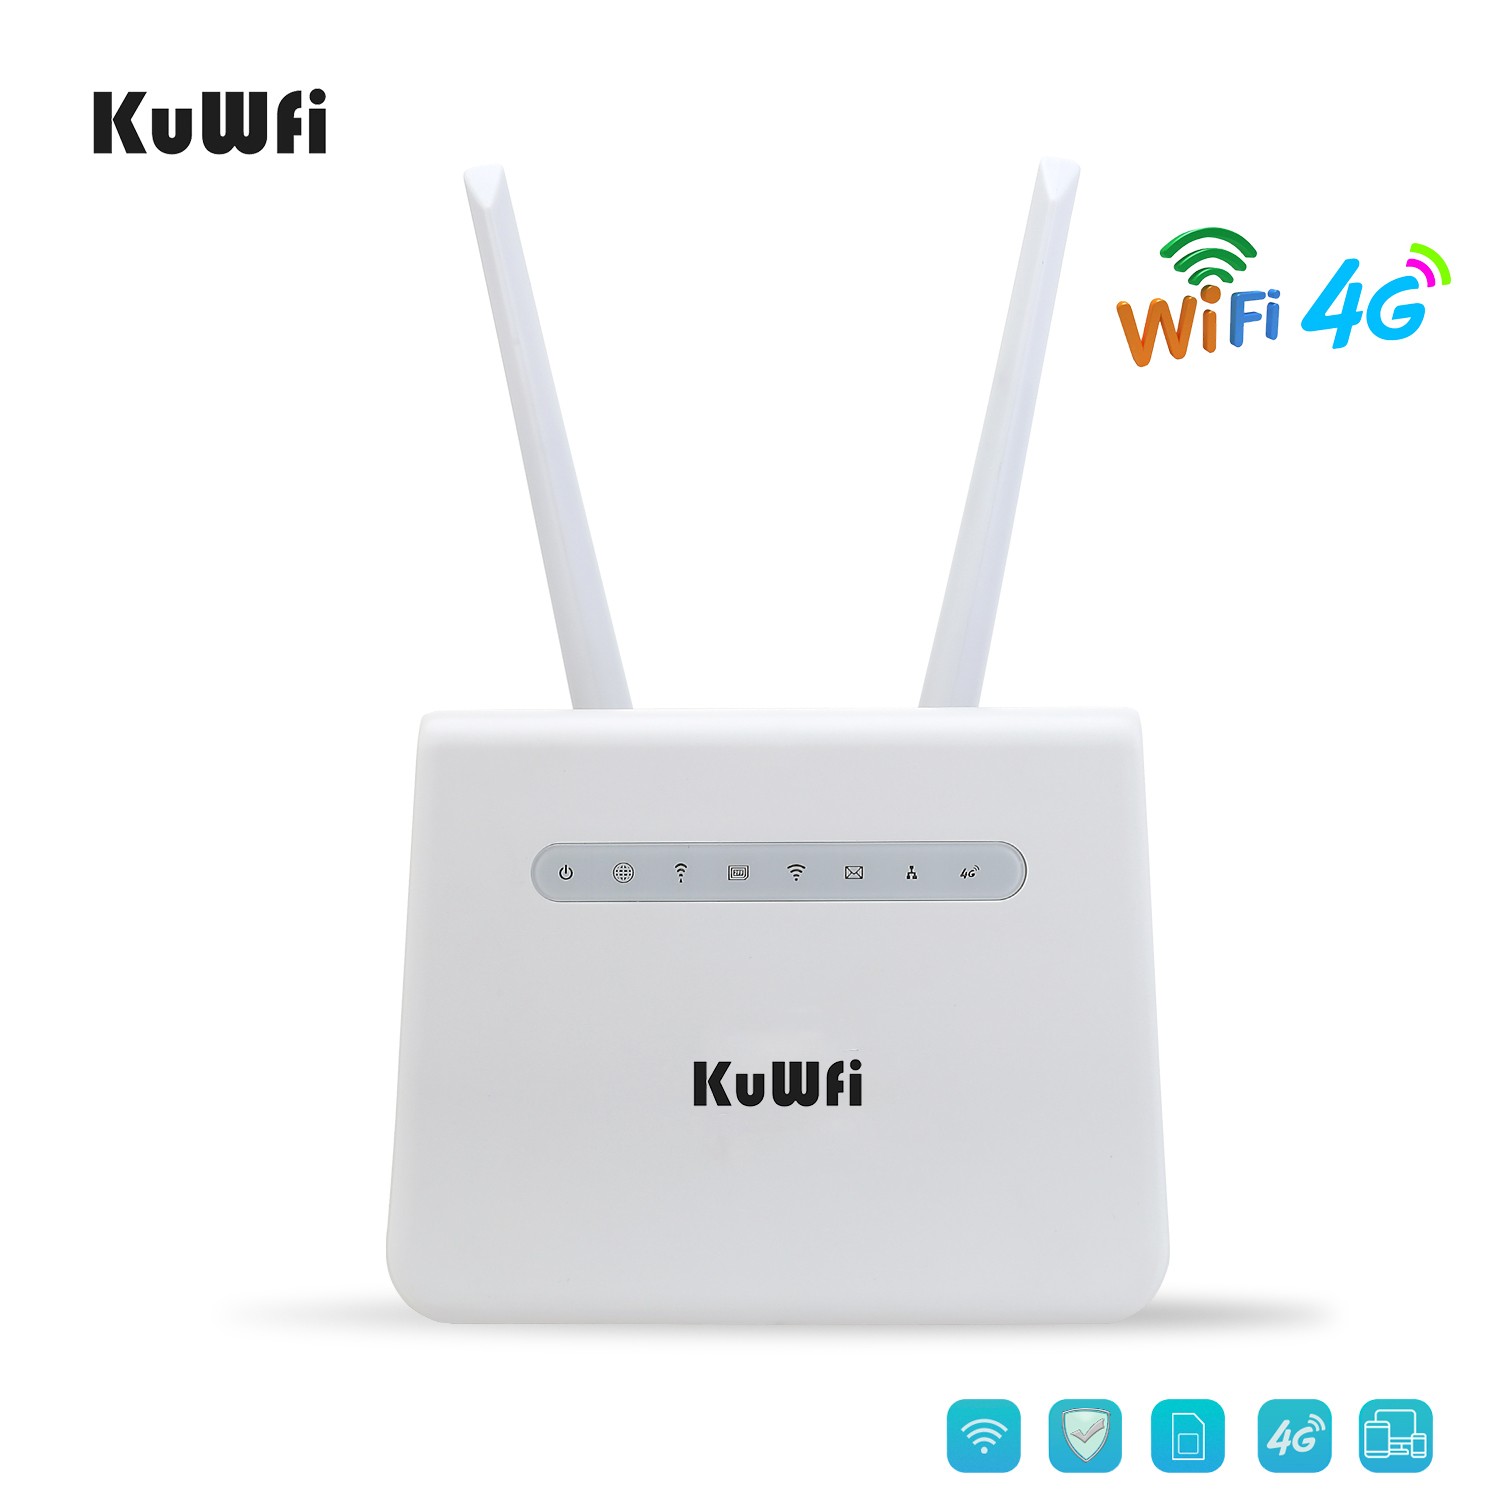 KuWFi 4G Wifi Router 300Mbps LTE CPE  CAT4 4G SIM Card Router Mobile Wifi Hotspot Support 4G To LAN Port 32 WiFi Users